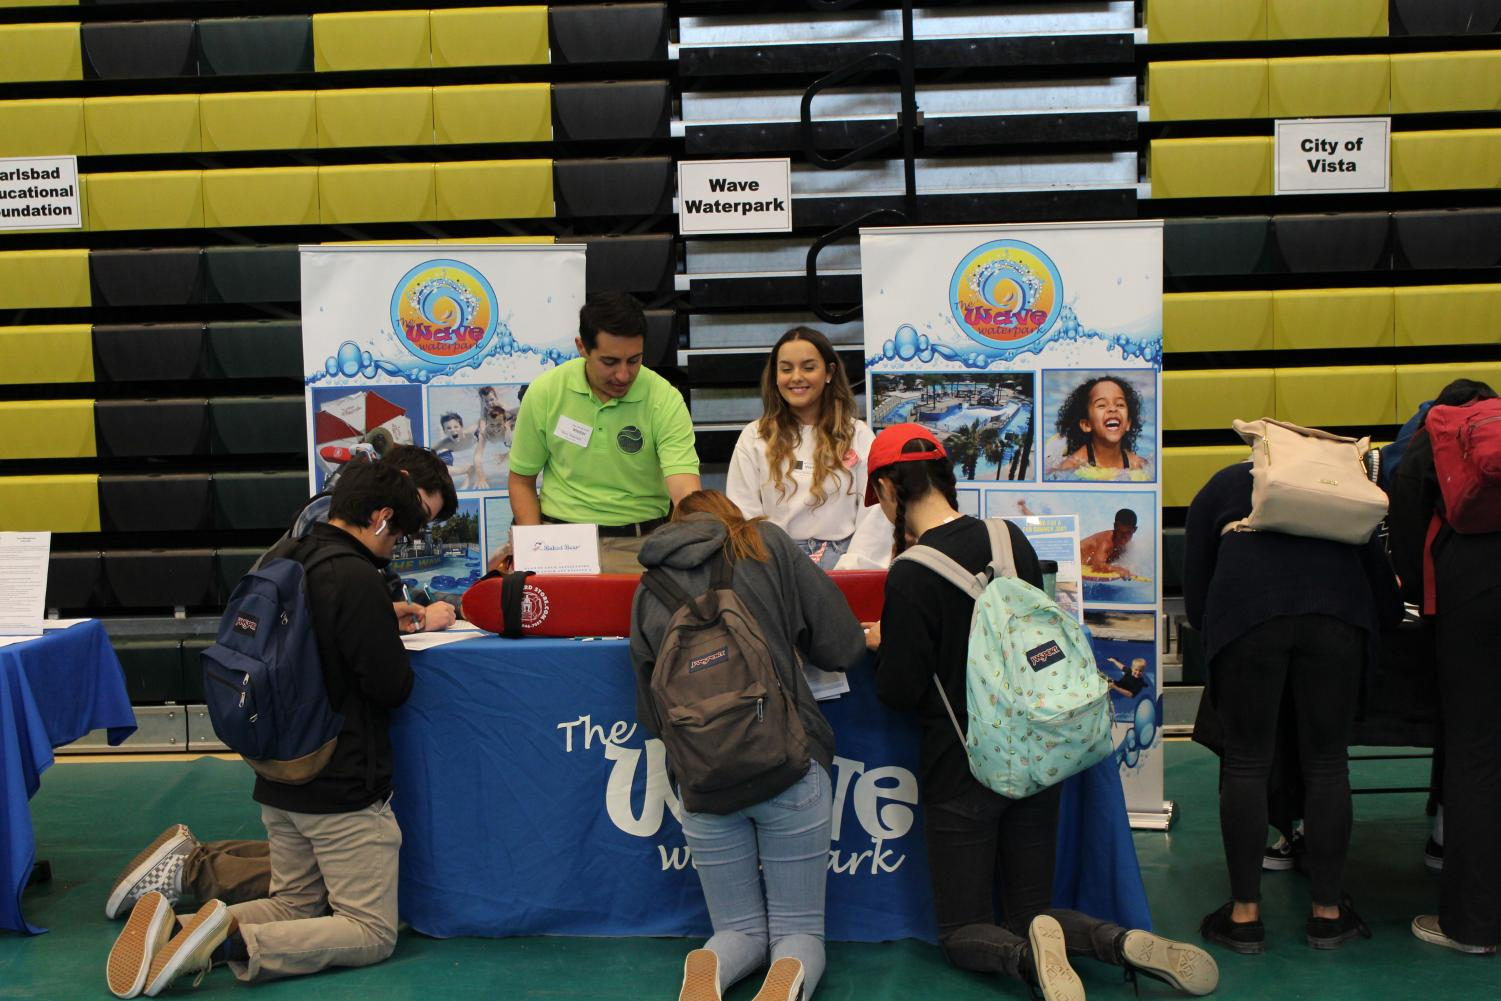 Students+kneel+before+the+Wave+Waterpark+stand+to+fill+out+job+applications.+Students+attended+the+Jive+Expo+in+the+Bobcat+arena+to+find+potential+job%2C+community+service%2C+and+internship+opportunities.+